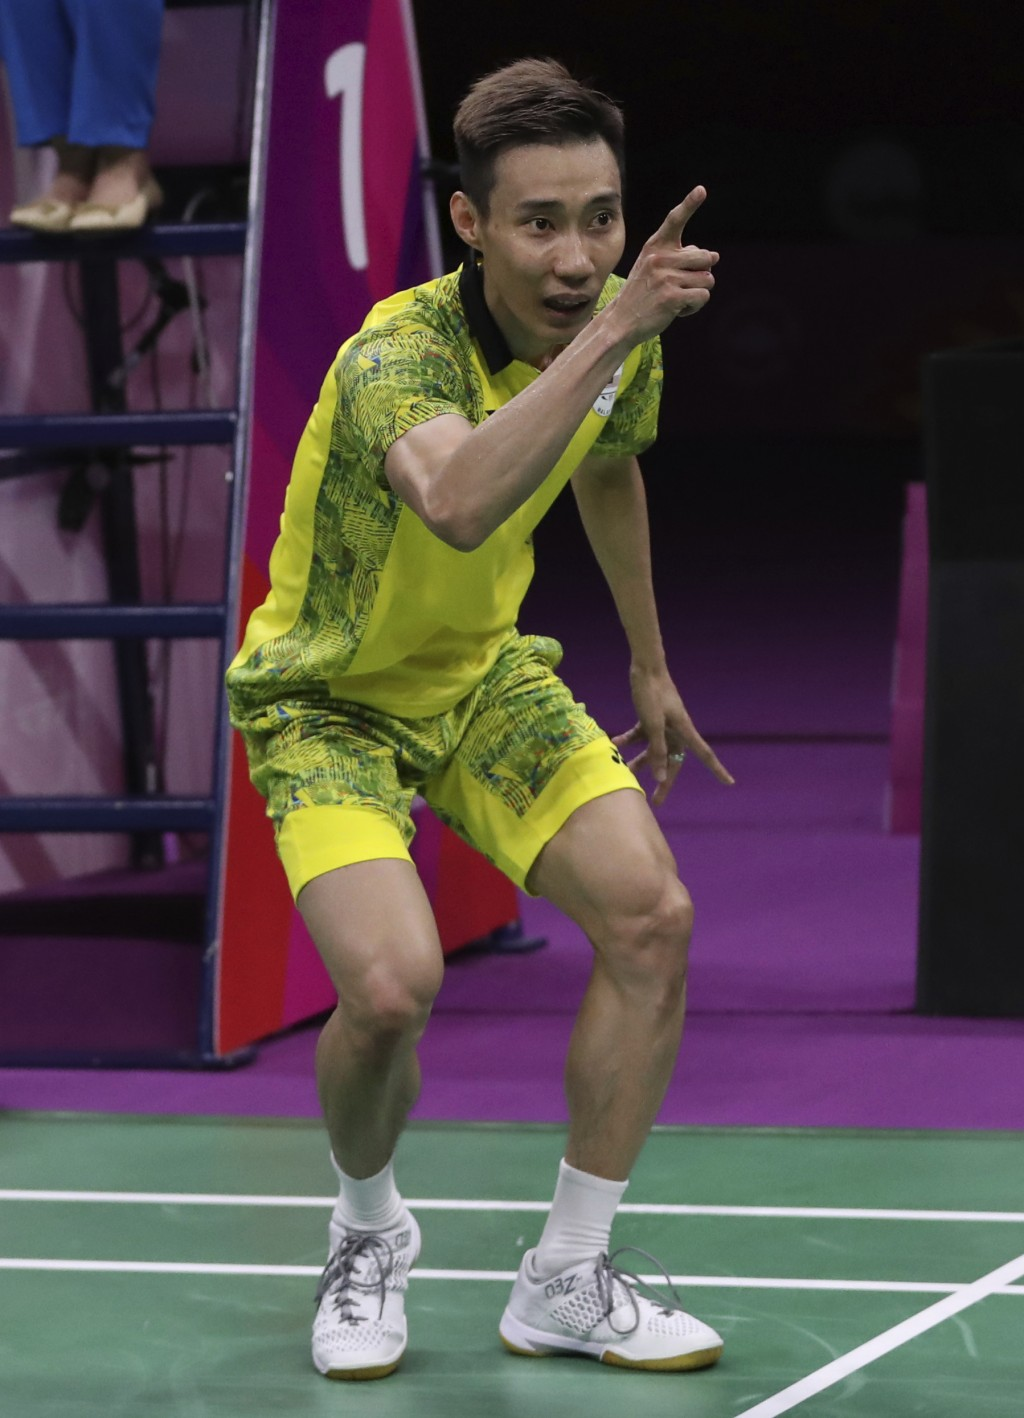 Malaysia's Lee Chong Wei celebrates after defeating India's Srikanth Kidambi during their men's singles badminton final match at Carrara Sports Hall d